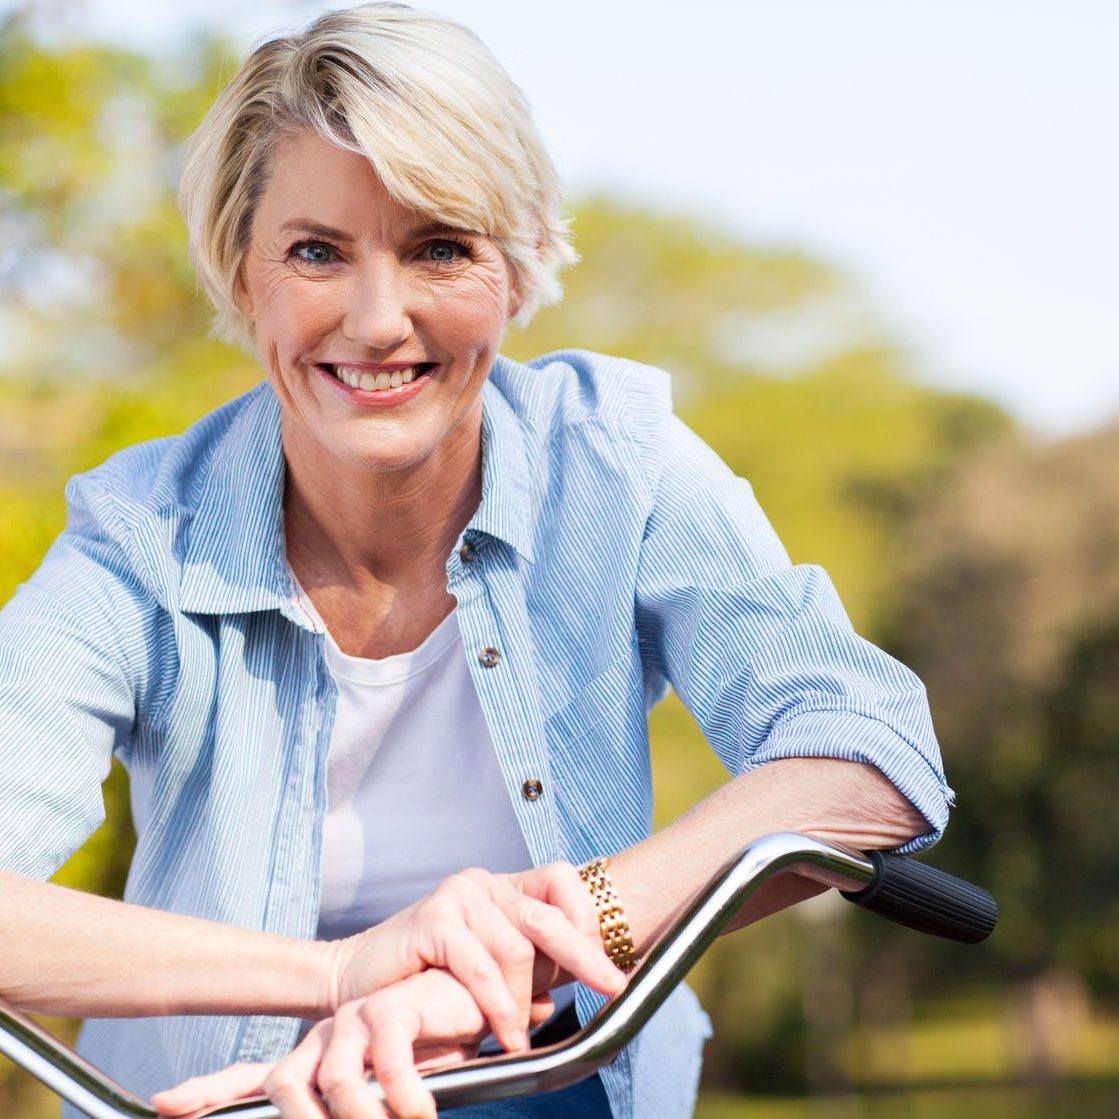 21512969 - close up portrait of senior woman on a bicycle